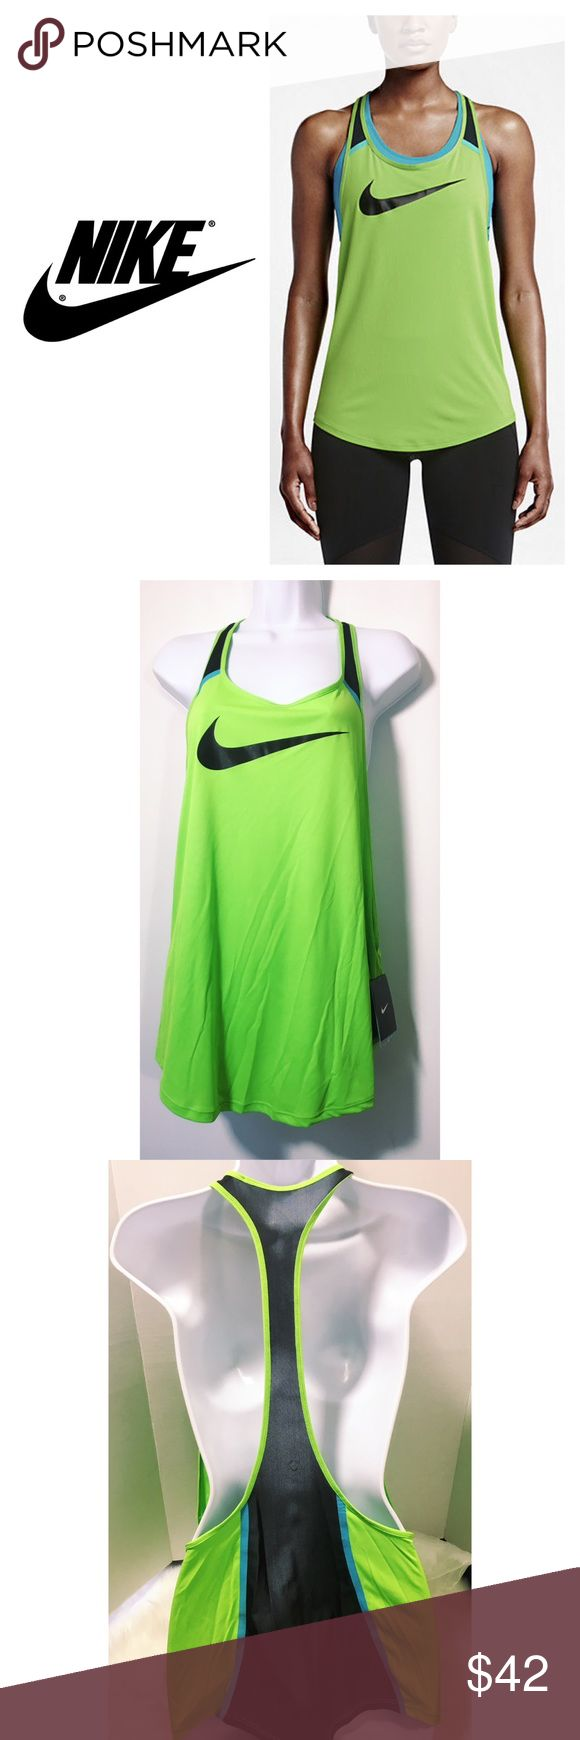 """Nike Women's Flow Graphic Training Tank Green L Great Neon Green/Black/Blue training tank by Nike. All of the Black sections are mesh, allowing great air flow. Dri-Fit Moisture wicking Technology. Polyester/Spandex/Elastane. Sleeveless. Size Large. ( Underarm to underarm 22"""", approx. 26"""" length) Loose fitting. Rounded Hem. Brand new with tags. Nike Tops Tank Tops"""